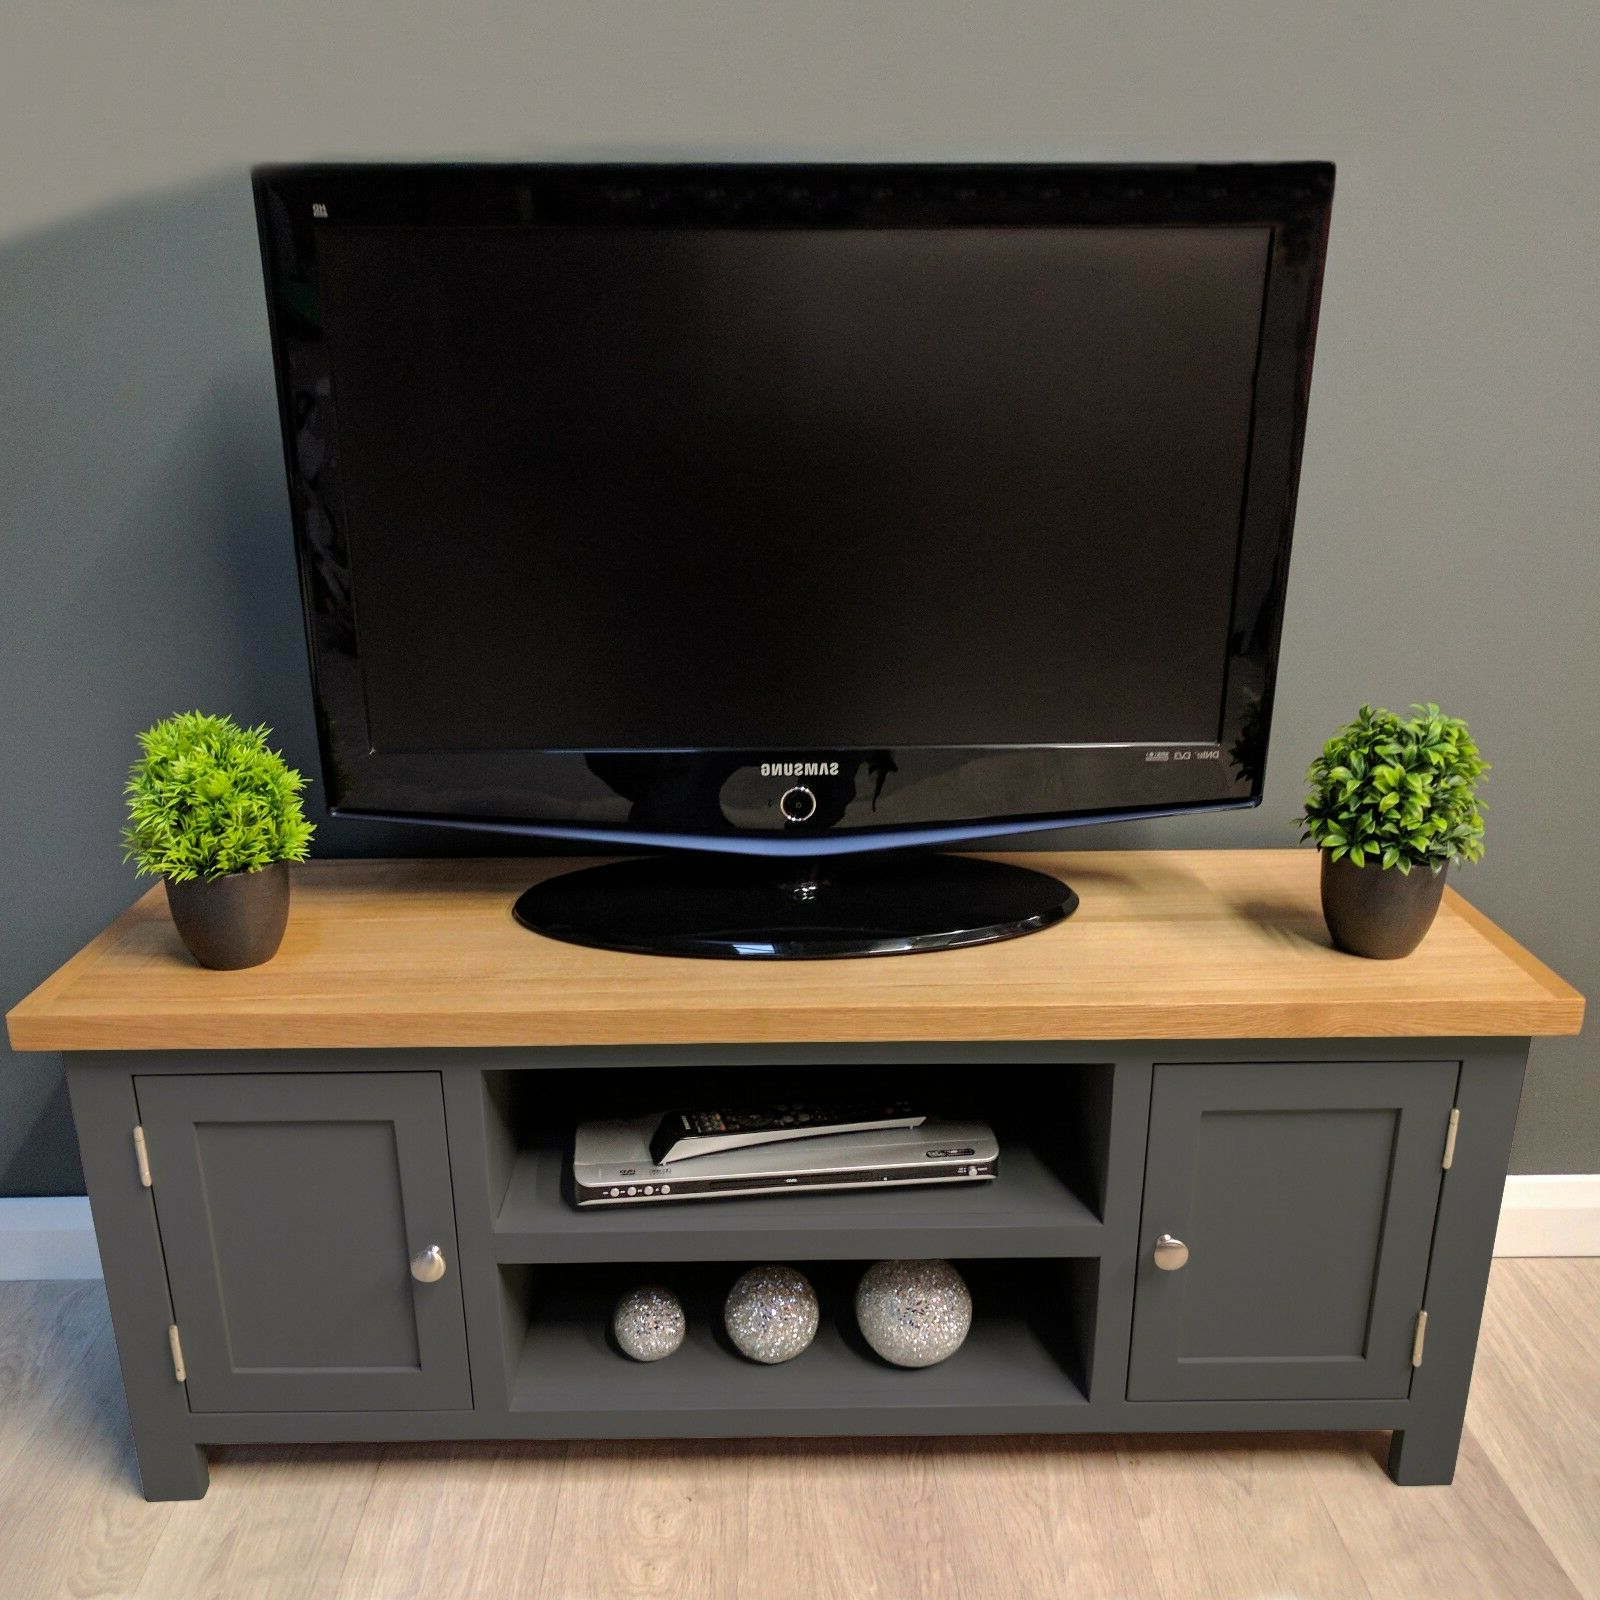 Popular Painted Oak Tv Unit Large / Solid Wood / Dark Grey / Tv In Carbon Tv Unit Stands (View 7 of 10)